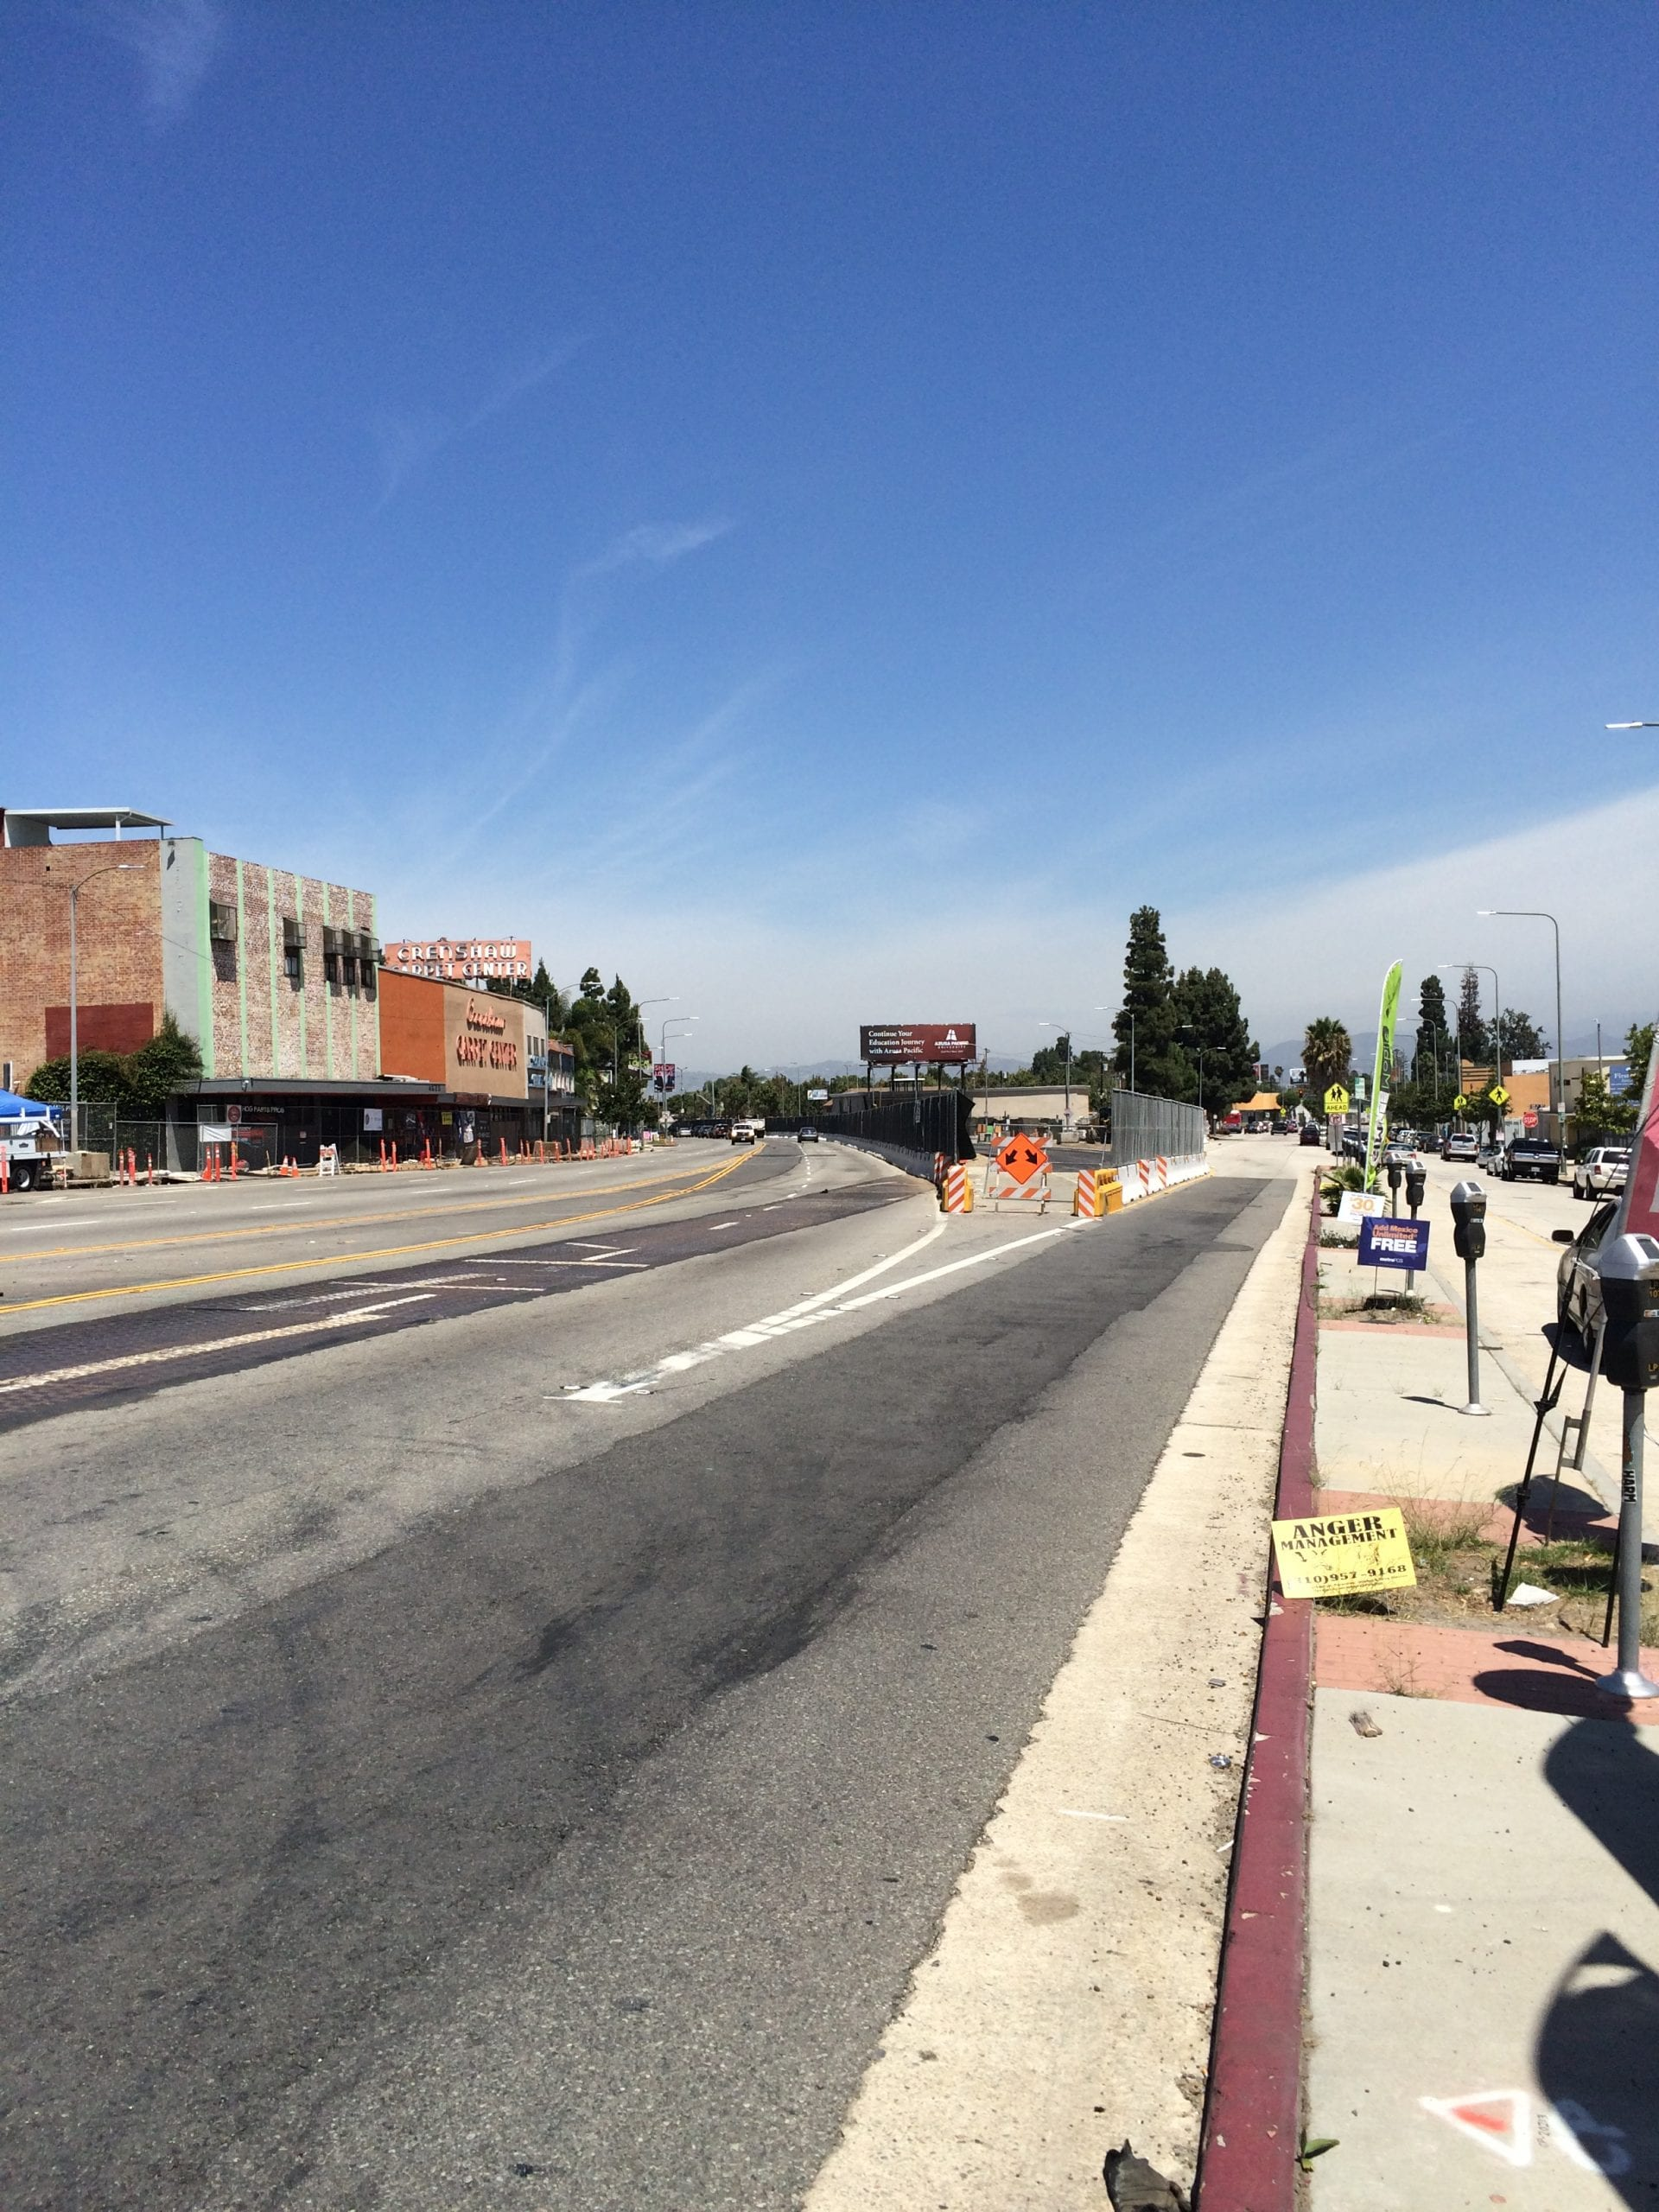 Looking north on Crenshaw Boulevard at 48th Street where weekend closures will take place beginning this Friday, Aug. 28.